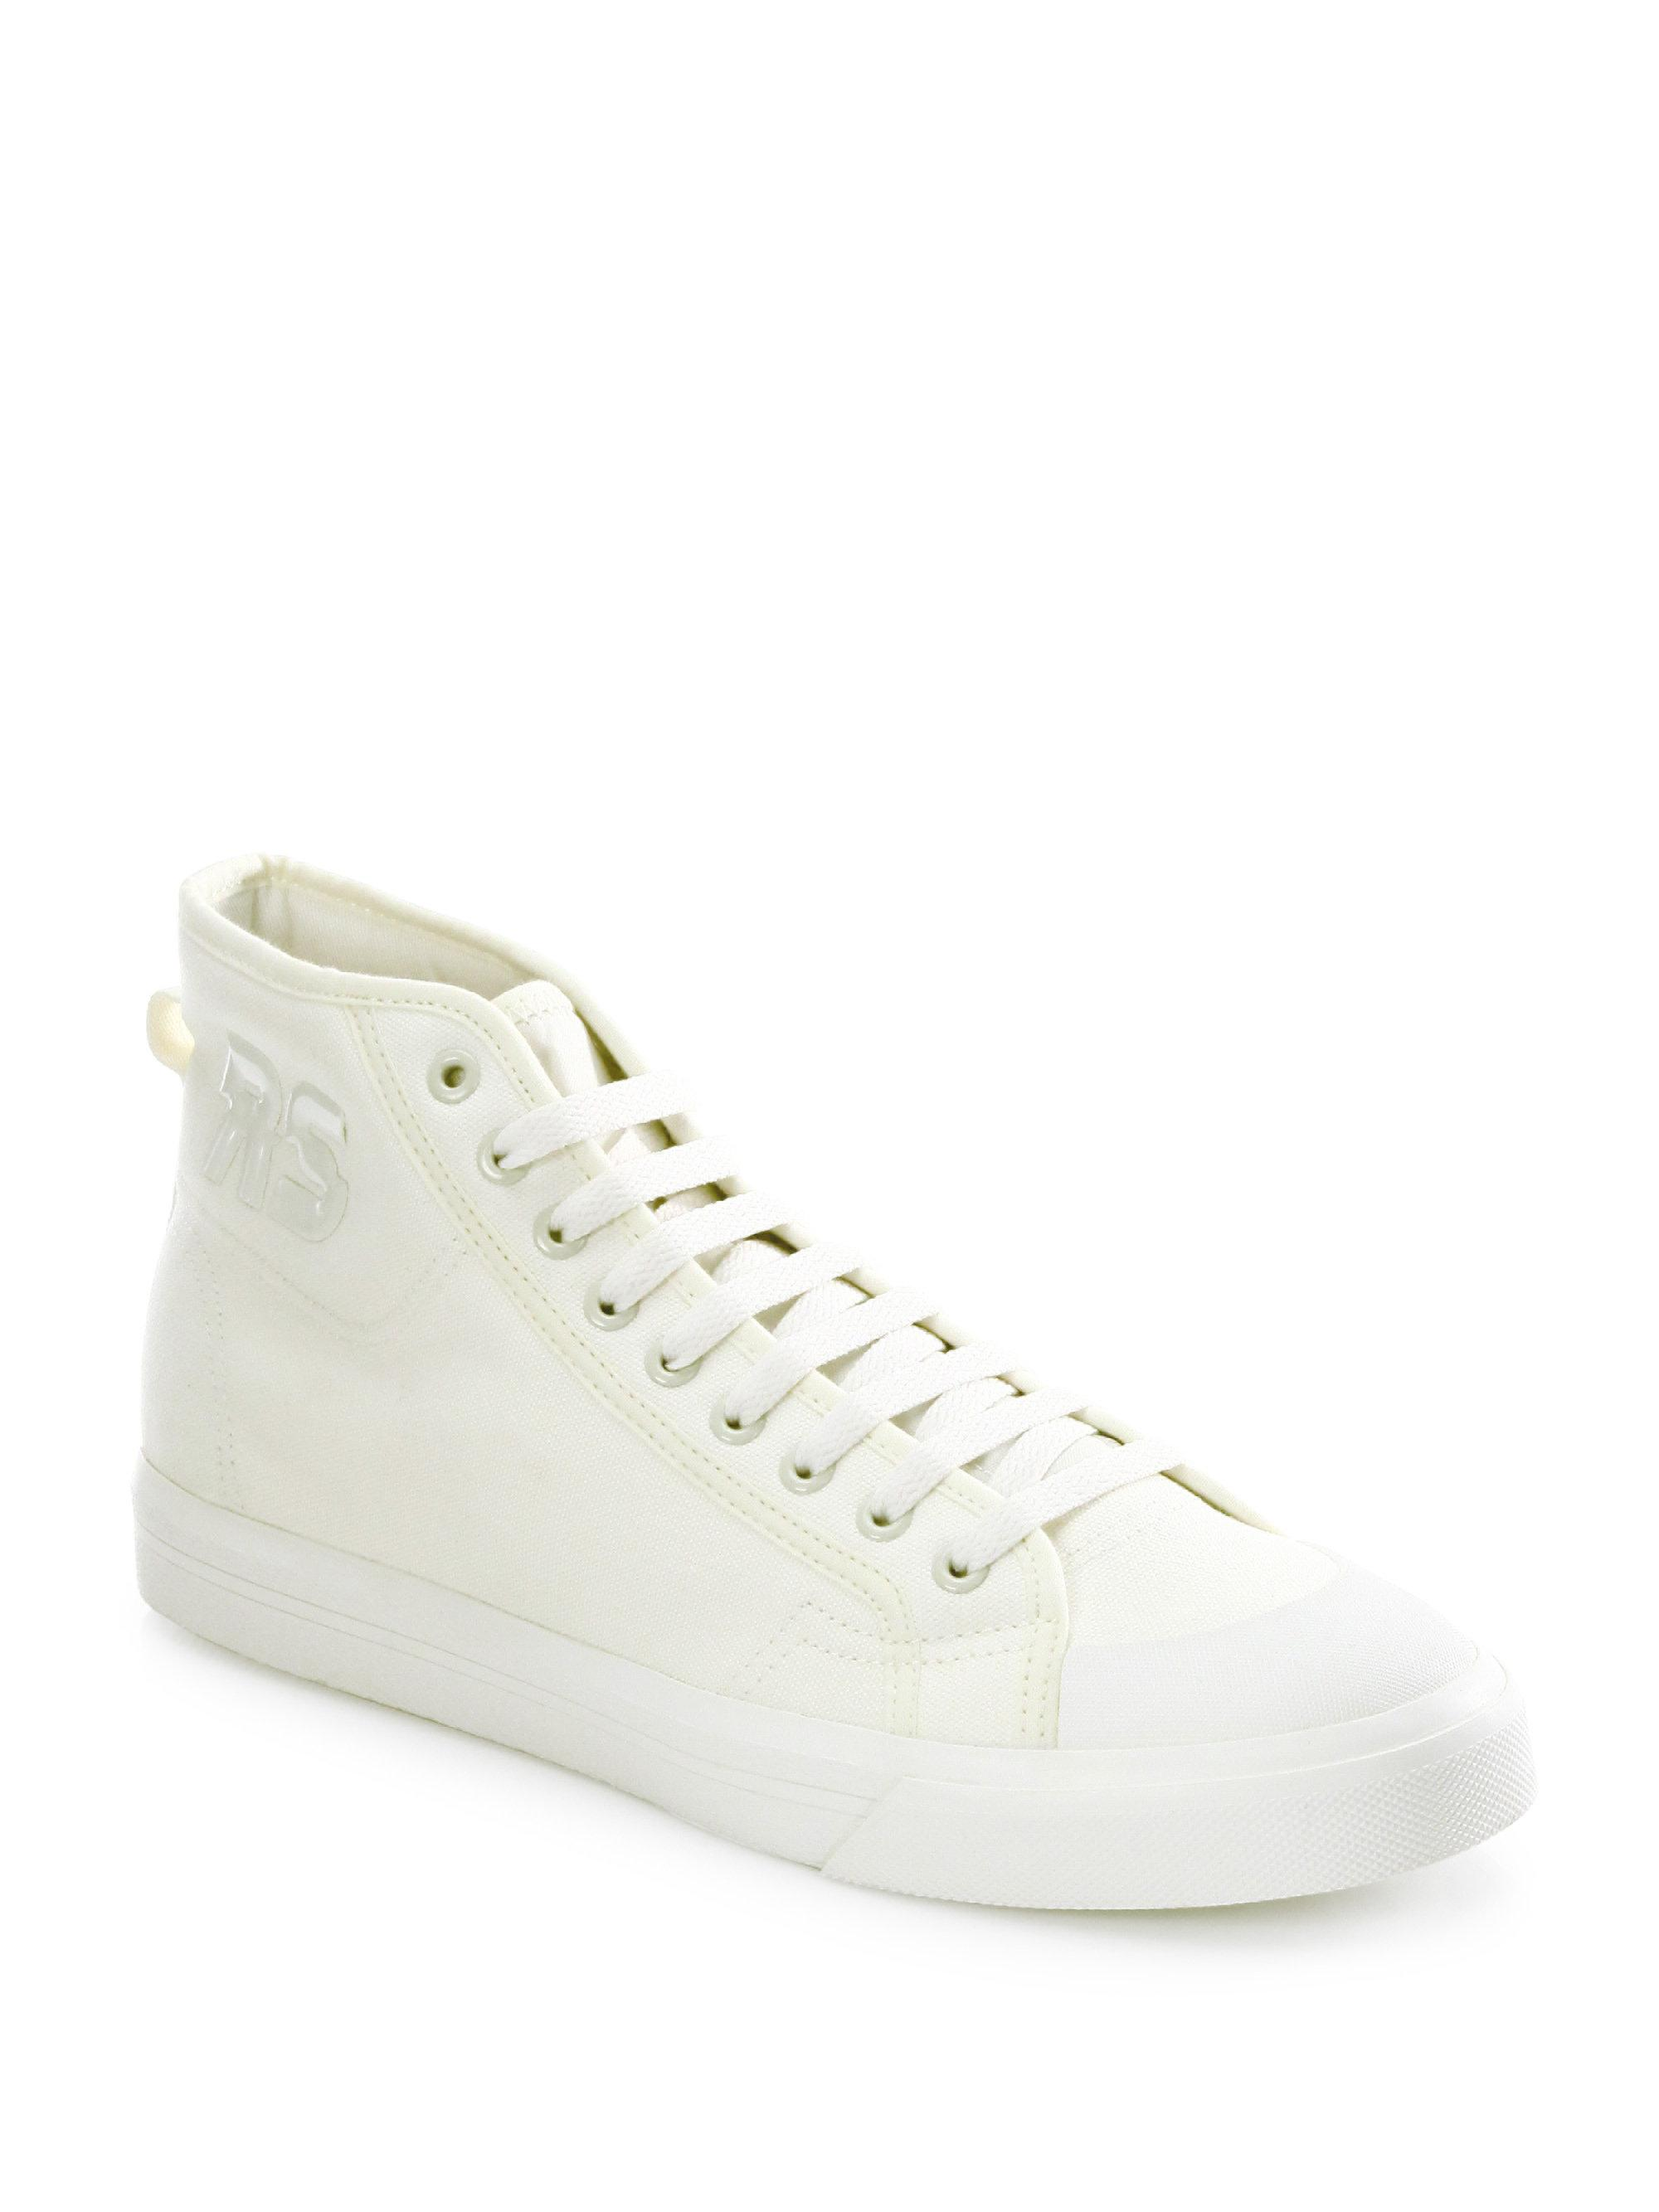 adidas By Raf Simons. Women's White Spirit Canvas High-top Sneakers